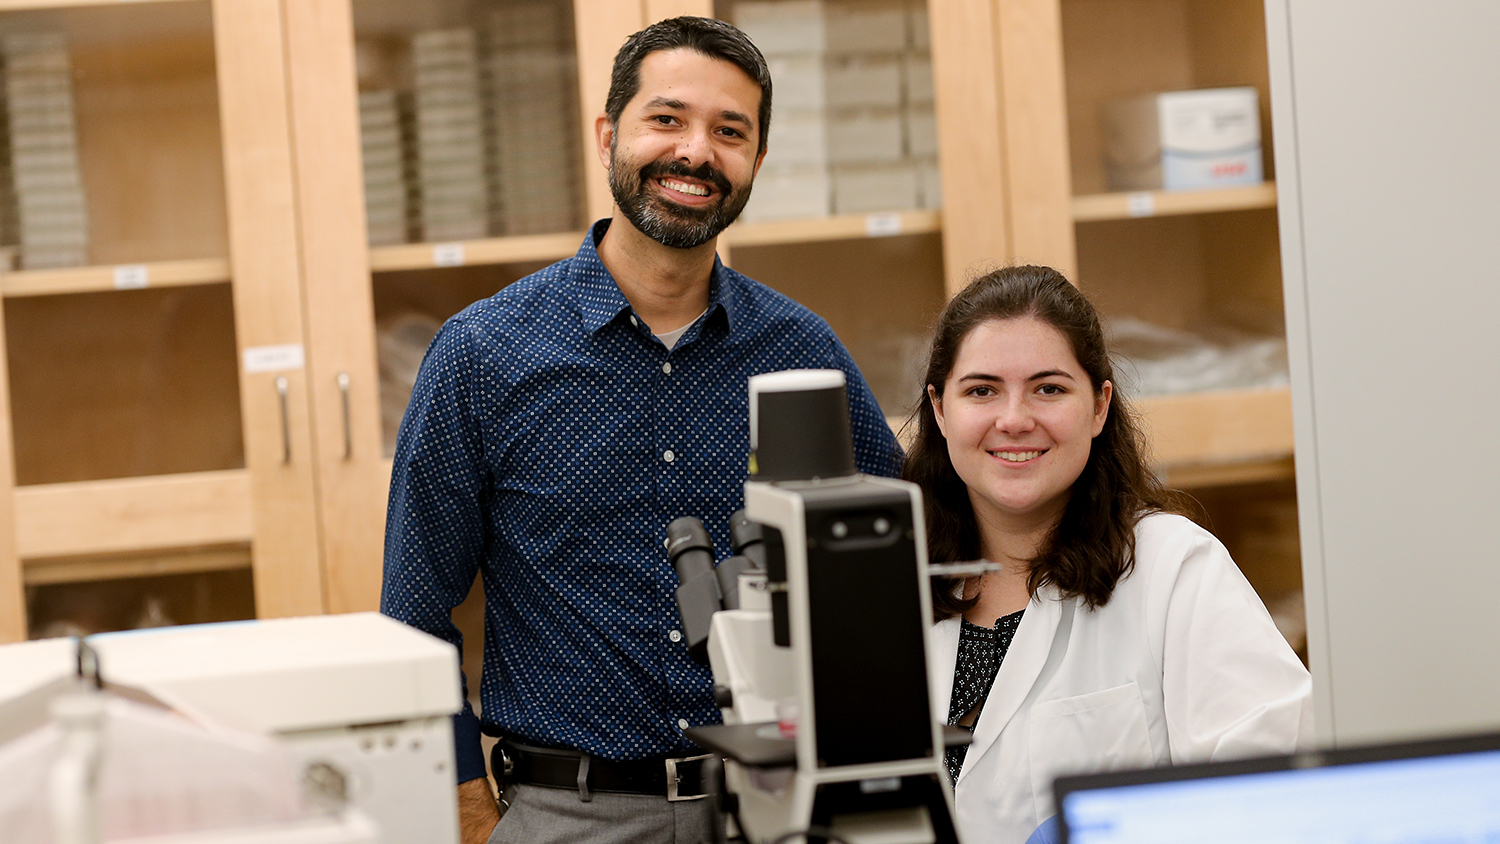 A male professor and a female student at a microscope in a lab.